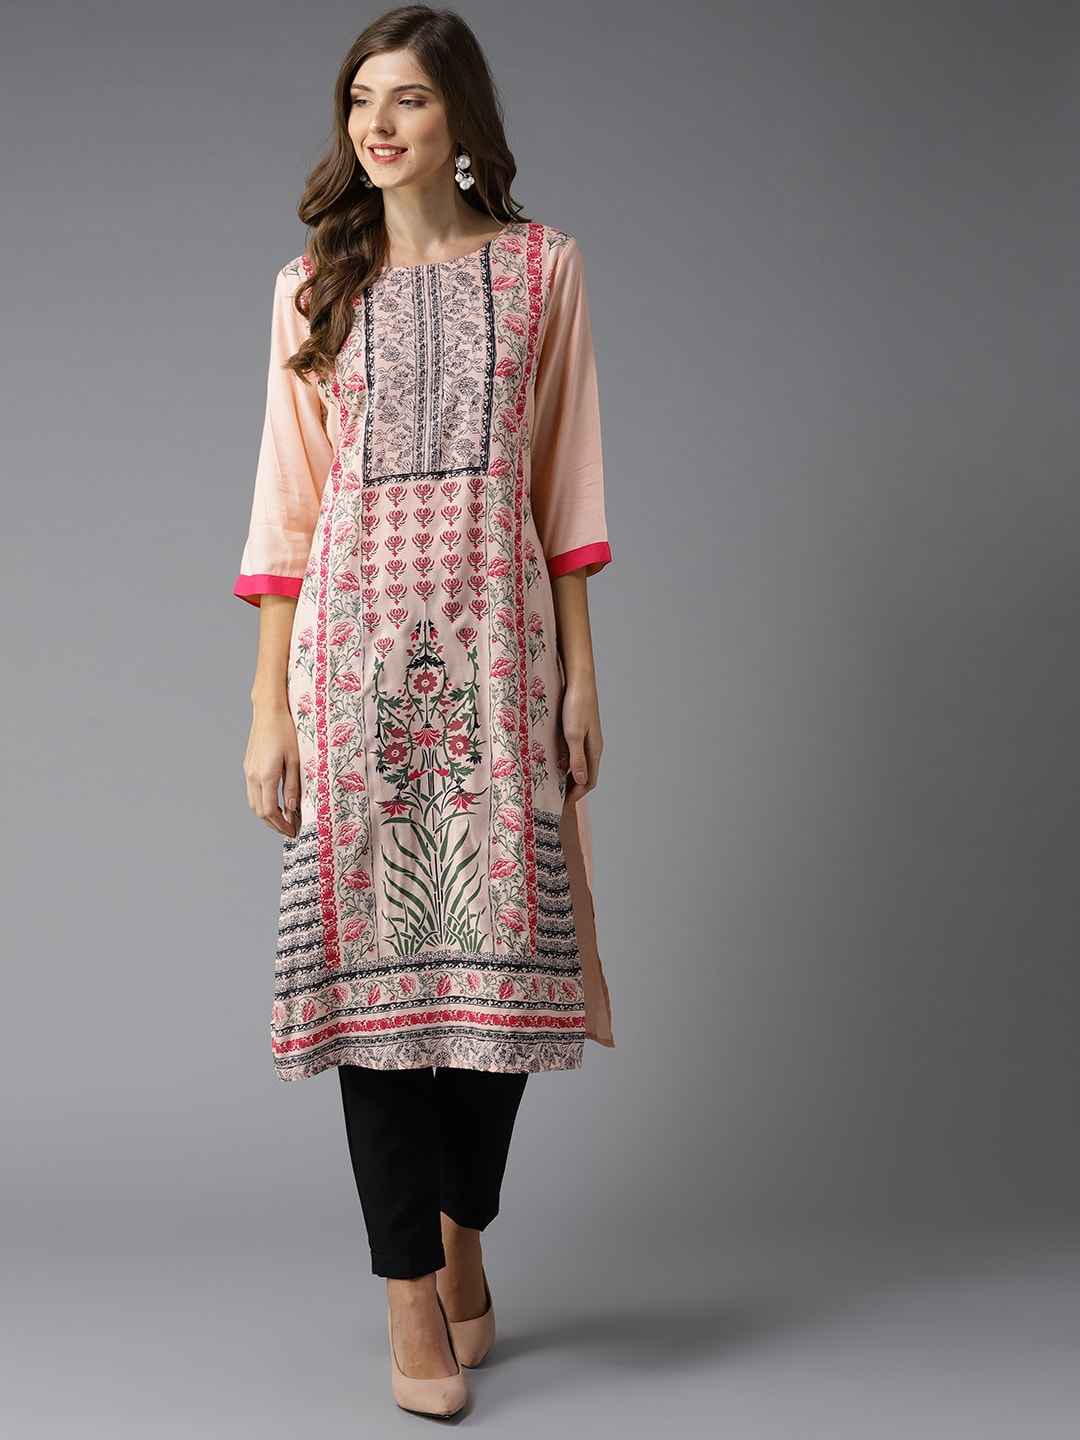 aa7f55e7202 Fusion Wear - Online Shopping of Indian Fusion Wear